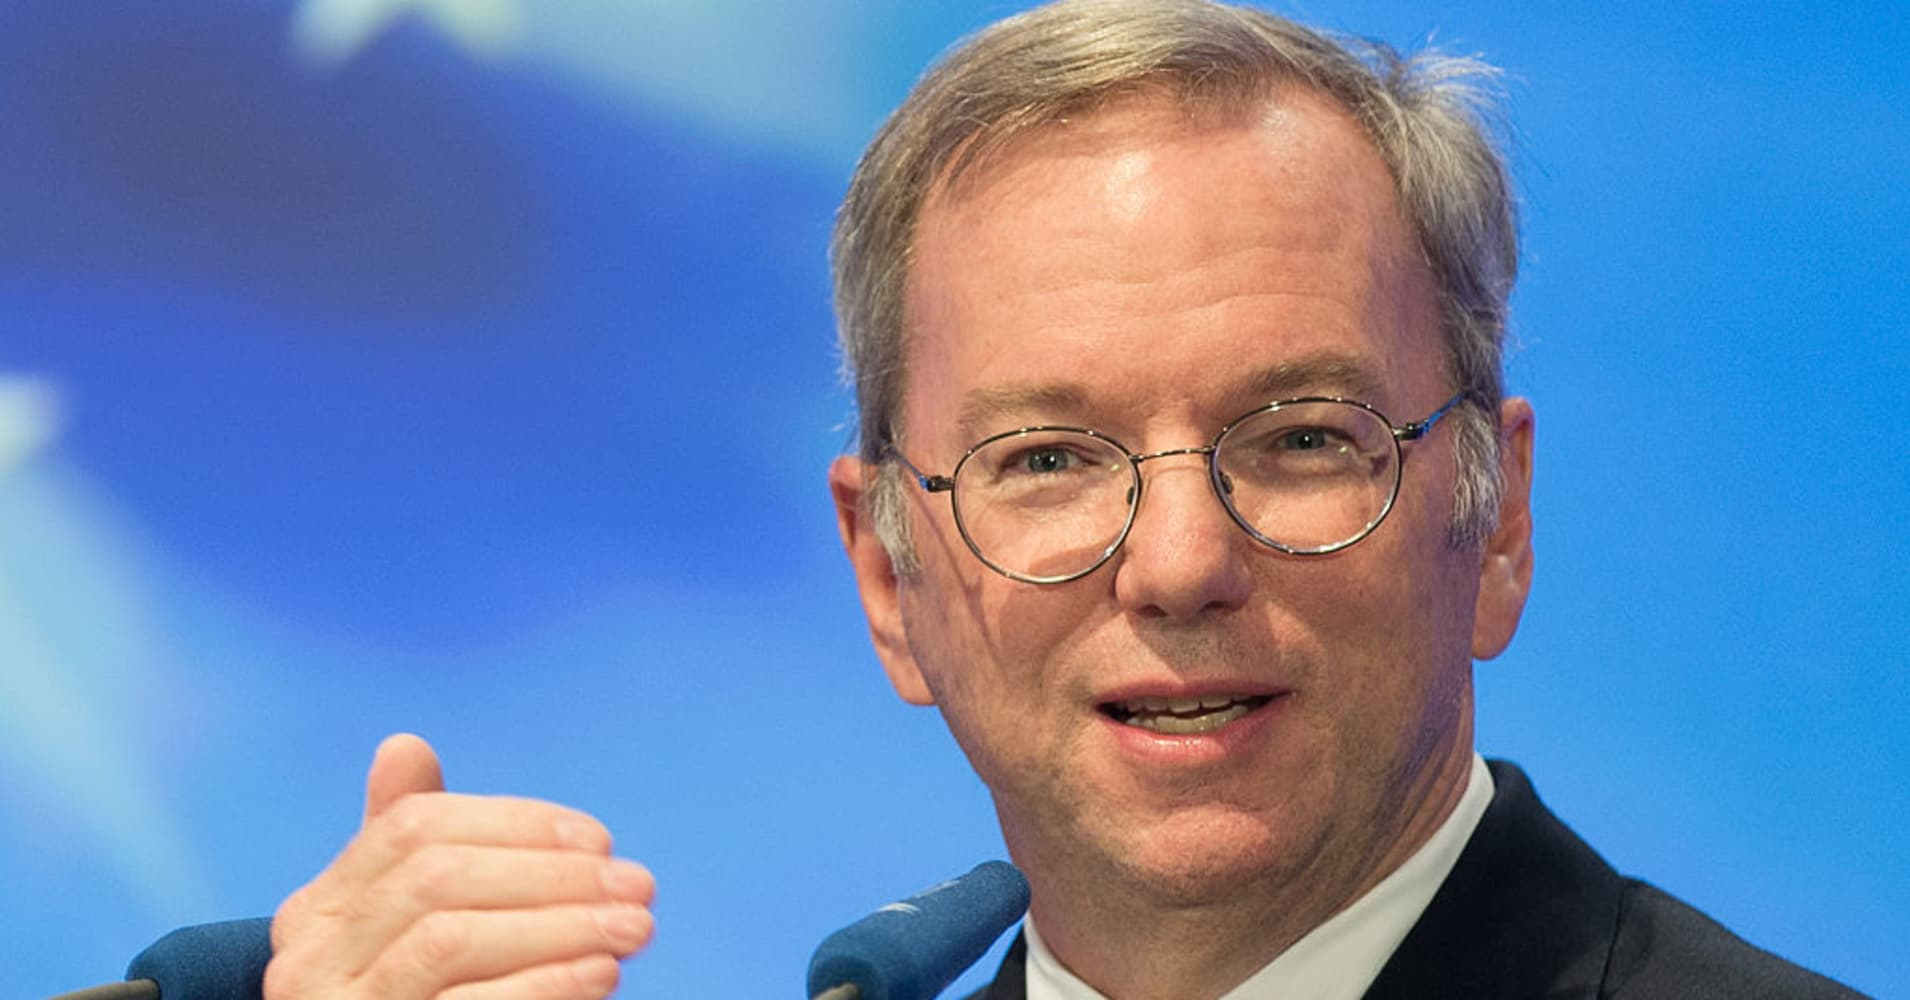 Chairman of Alphabet Eric Schmidt